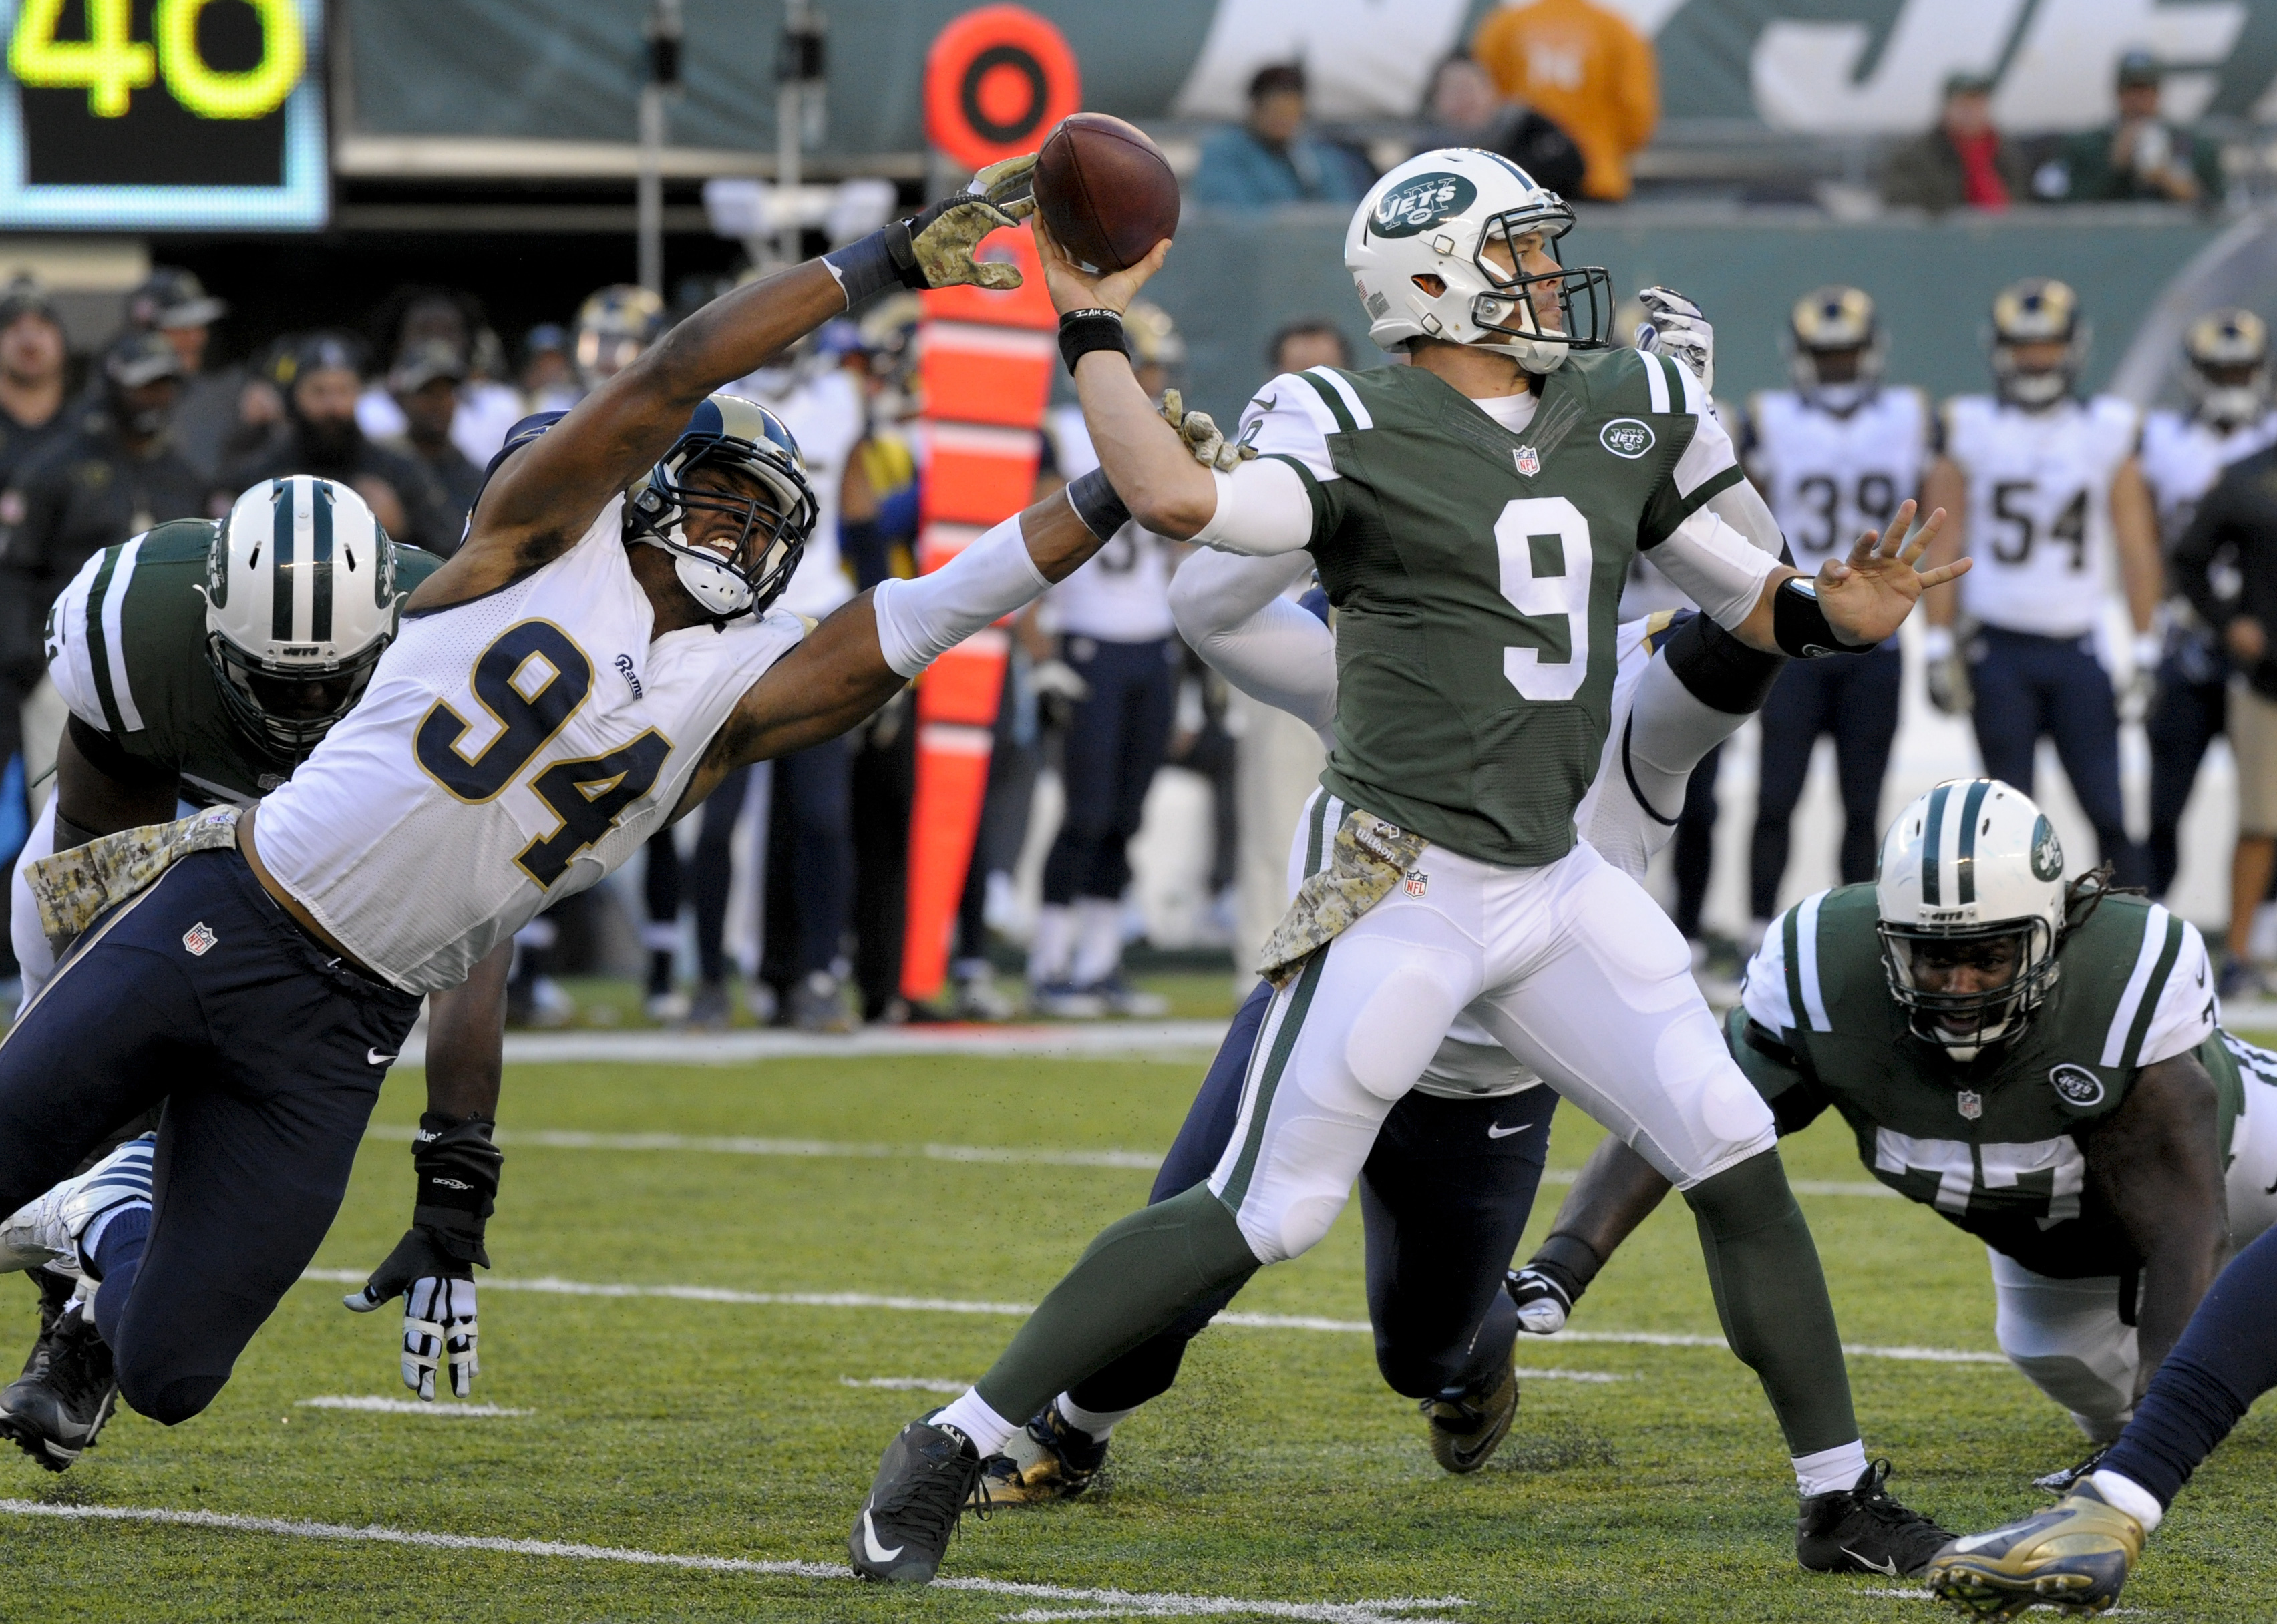 FILE - In a Sunday, Nov. 13, 2016 file photo, New York Jets quarterback Bryce Petty (9) throws under pressure from Los Angeles Rams defensive end Robert Quinn (94) during the third quarter of an NFL football game, in East Rutherford, N.J. Los Angeles won